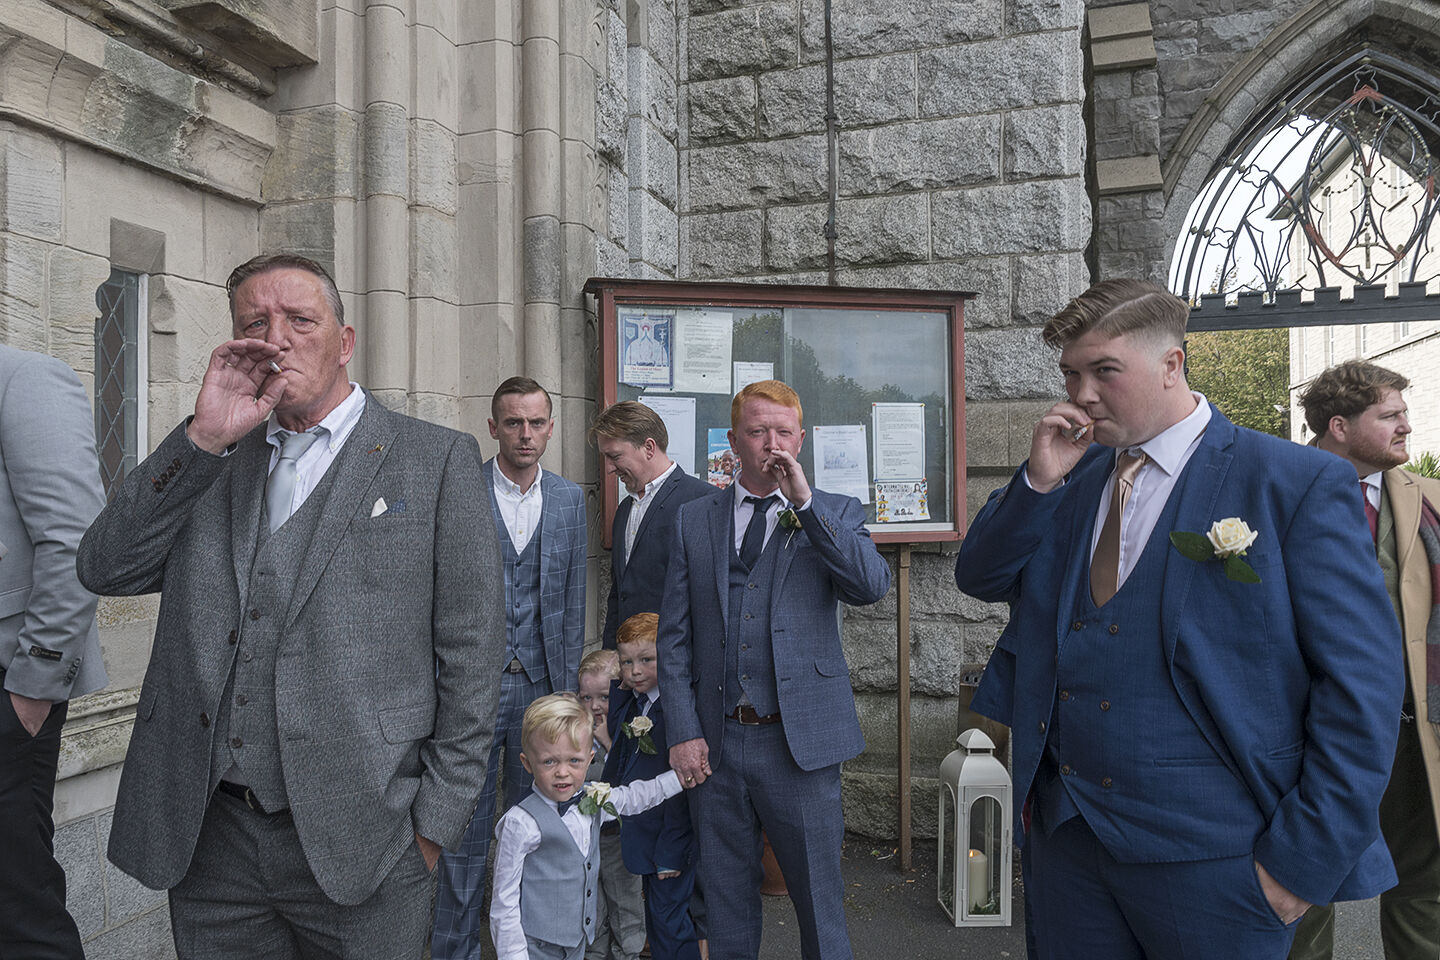 Connors Men waiting for The Bride to arrive, Dublin, Ireland 2019